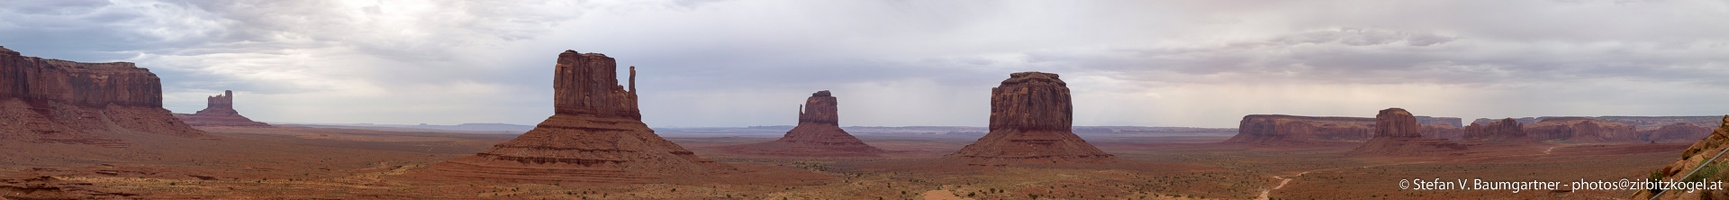 Monument_Valley_02_180